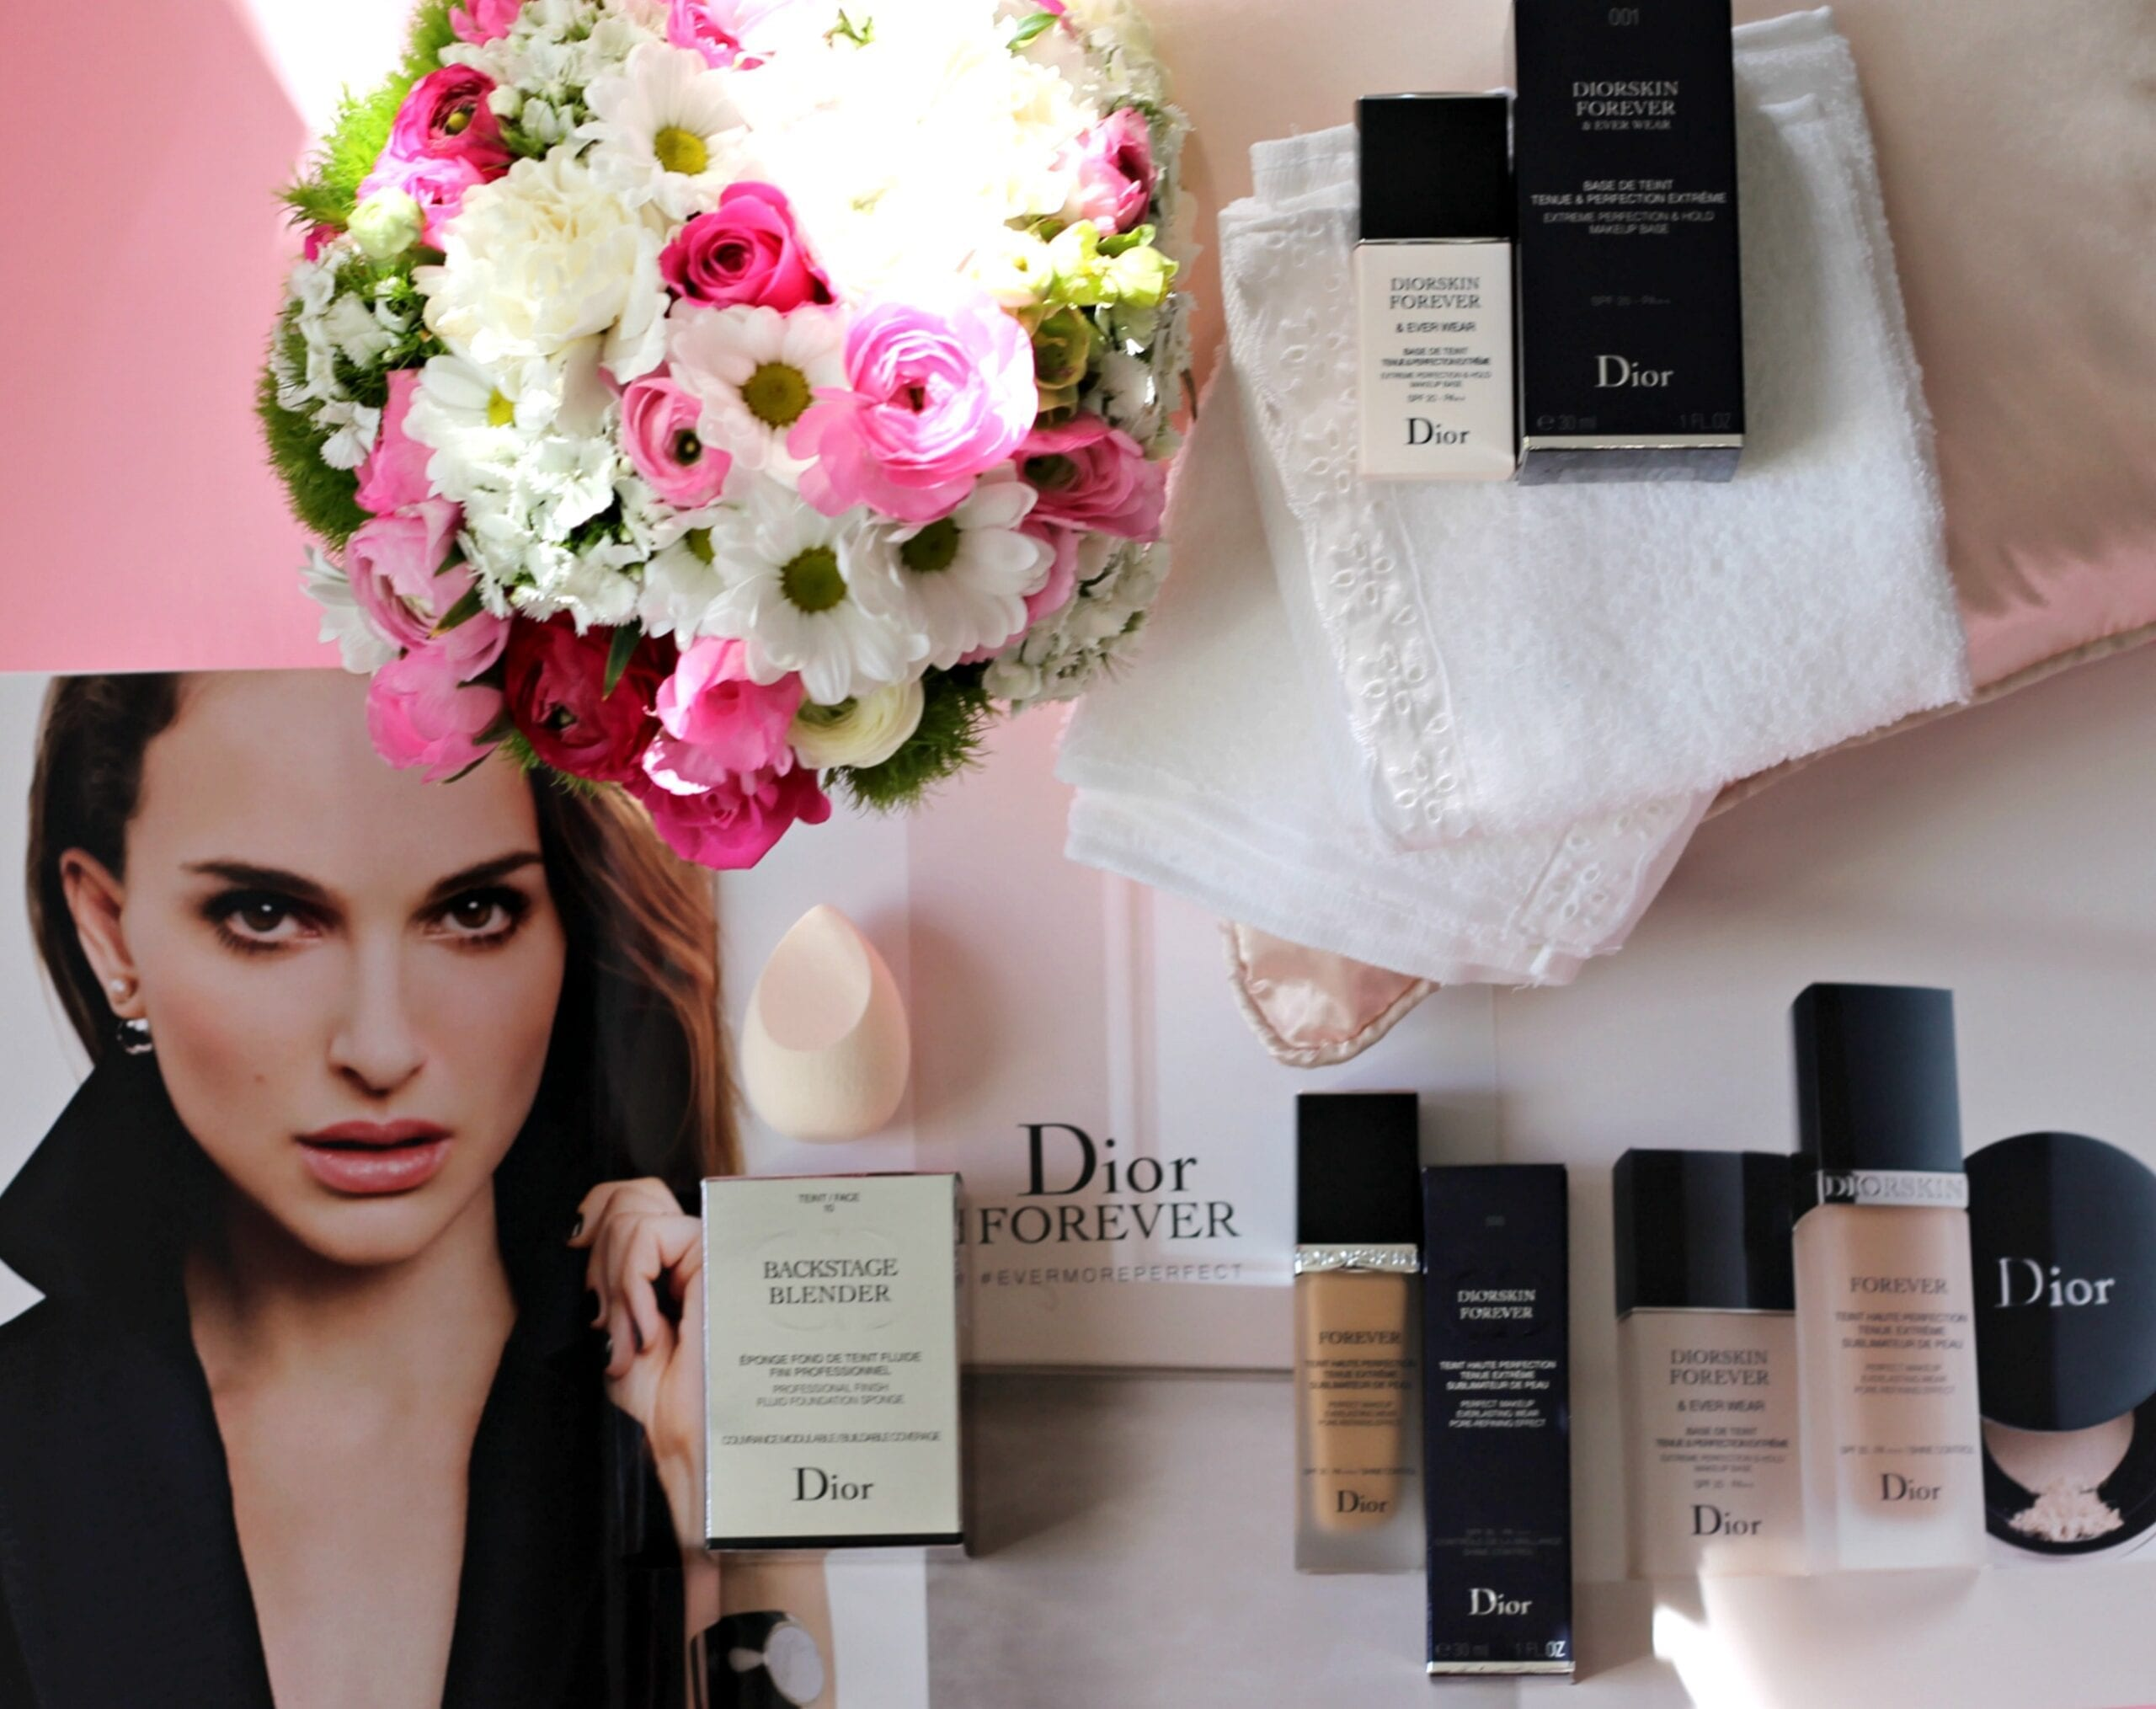 Diorskin forever haute perfection, theladycracy.it, diorskin forever, elisa bellino